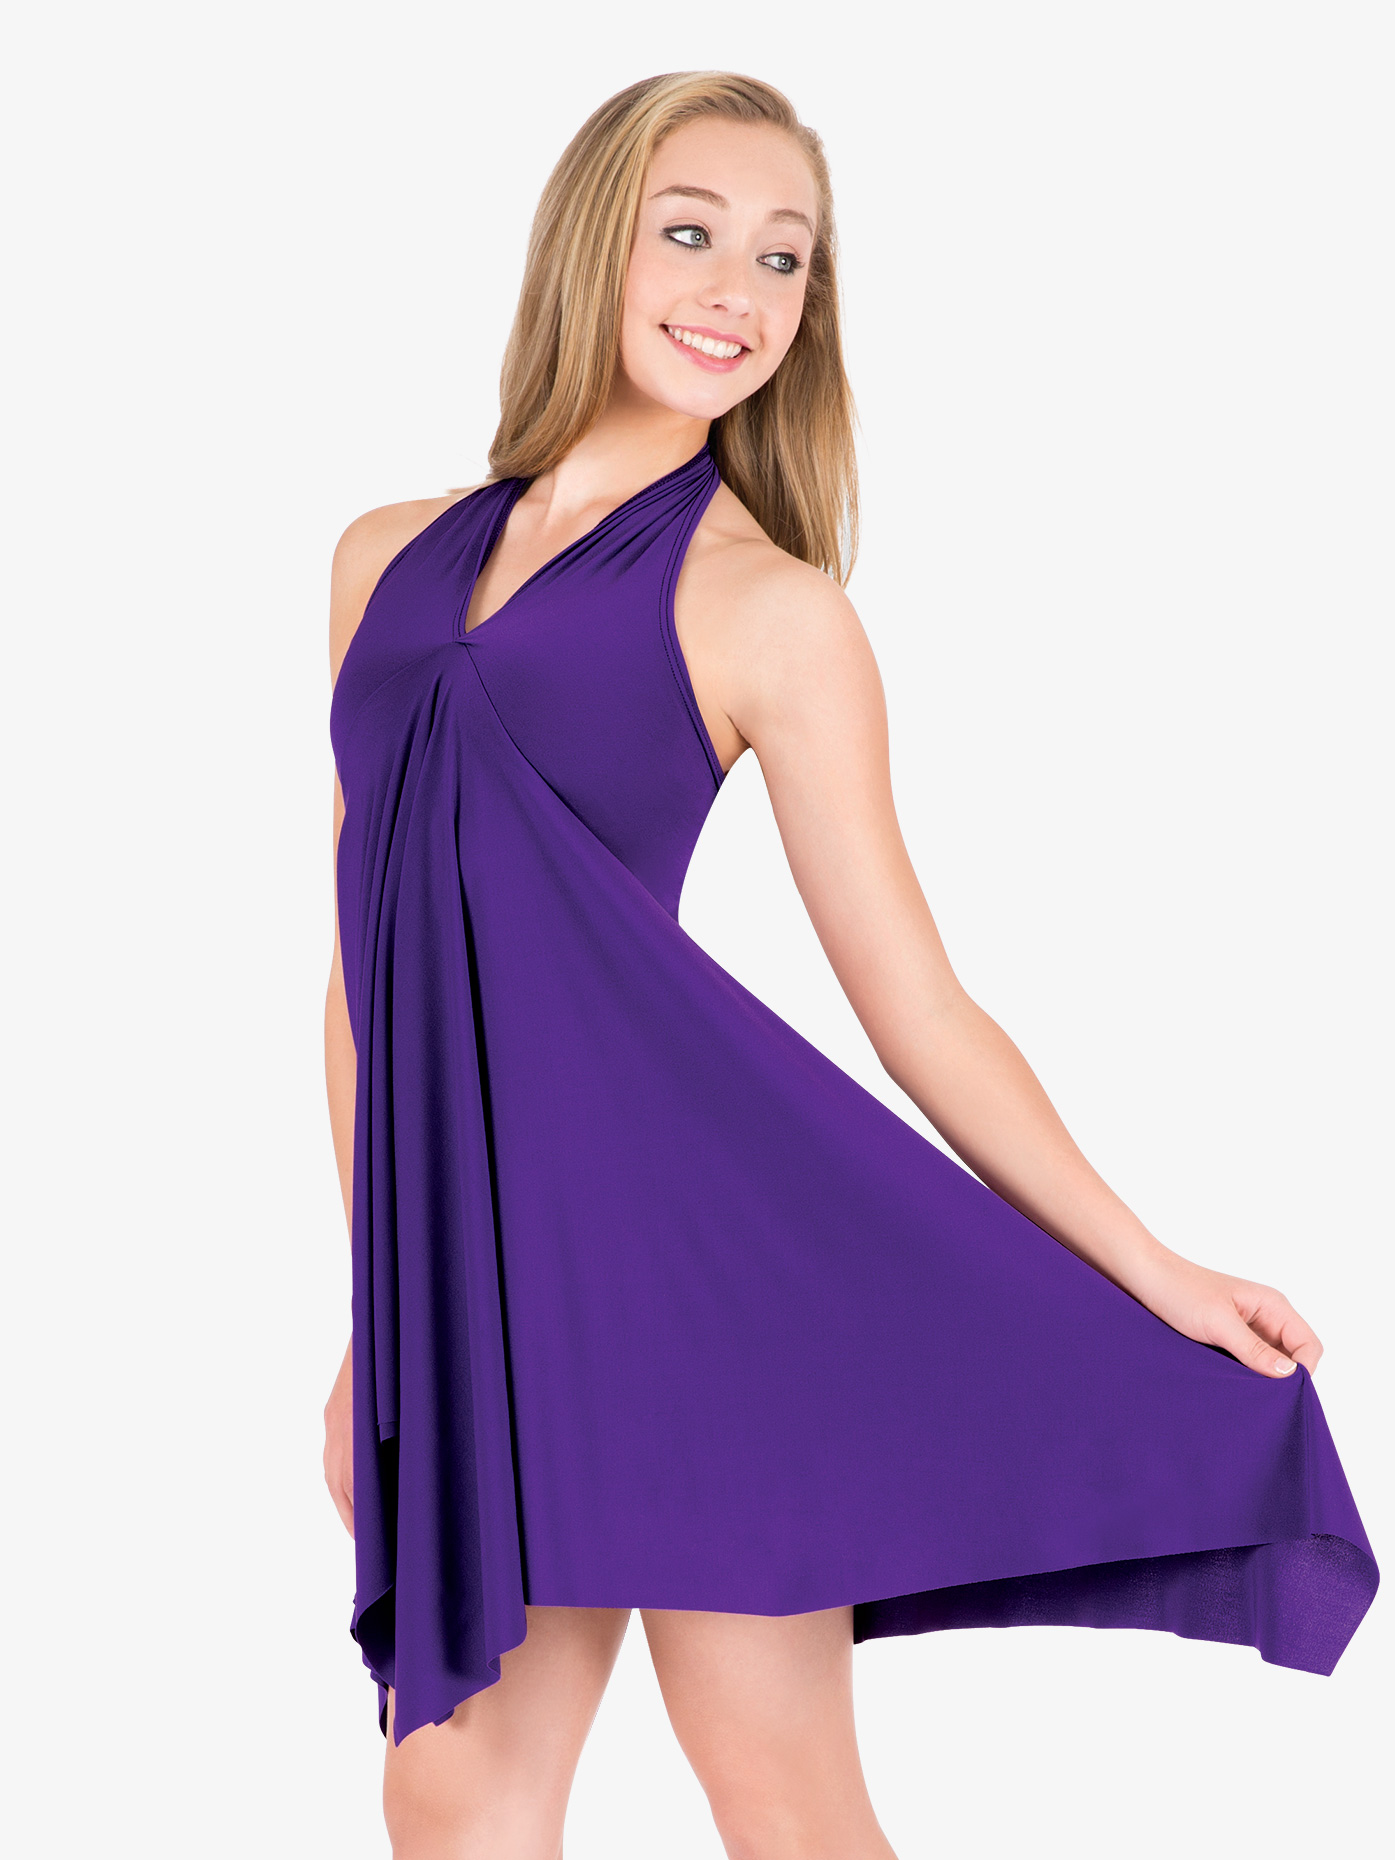 Body Wrappers Adult Convertible Dress/Skirt 7825